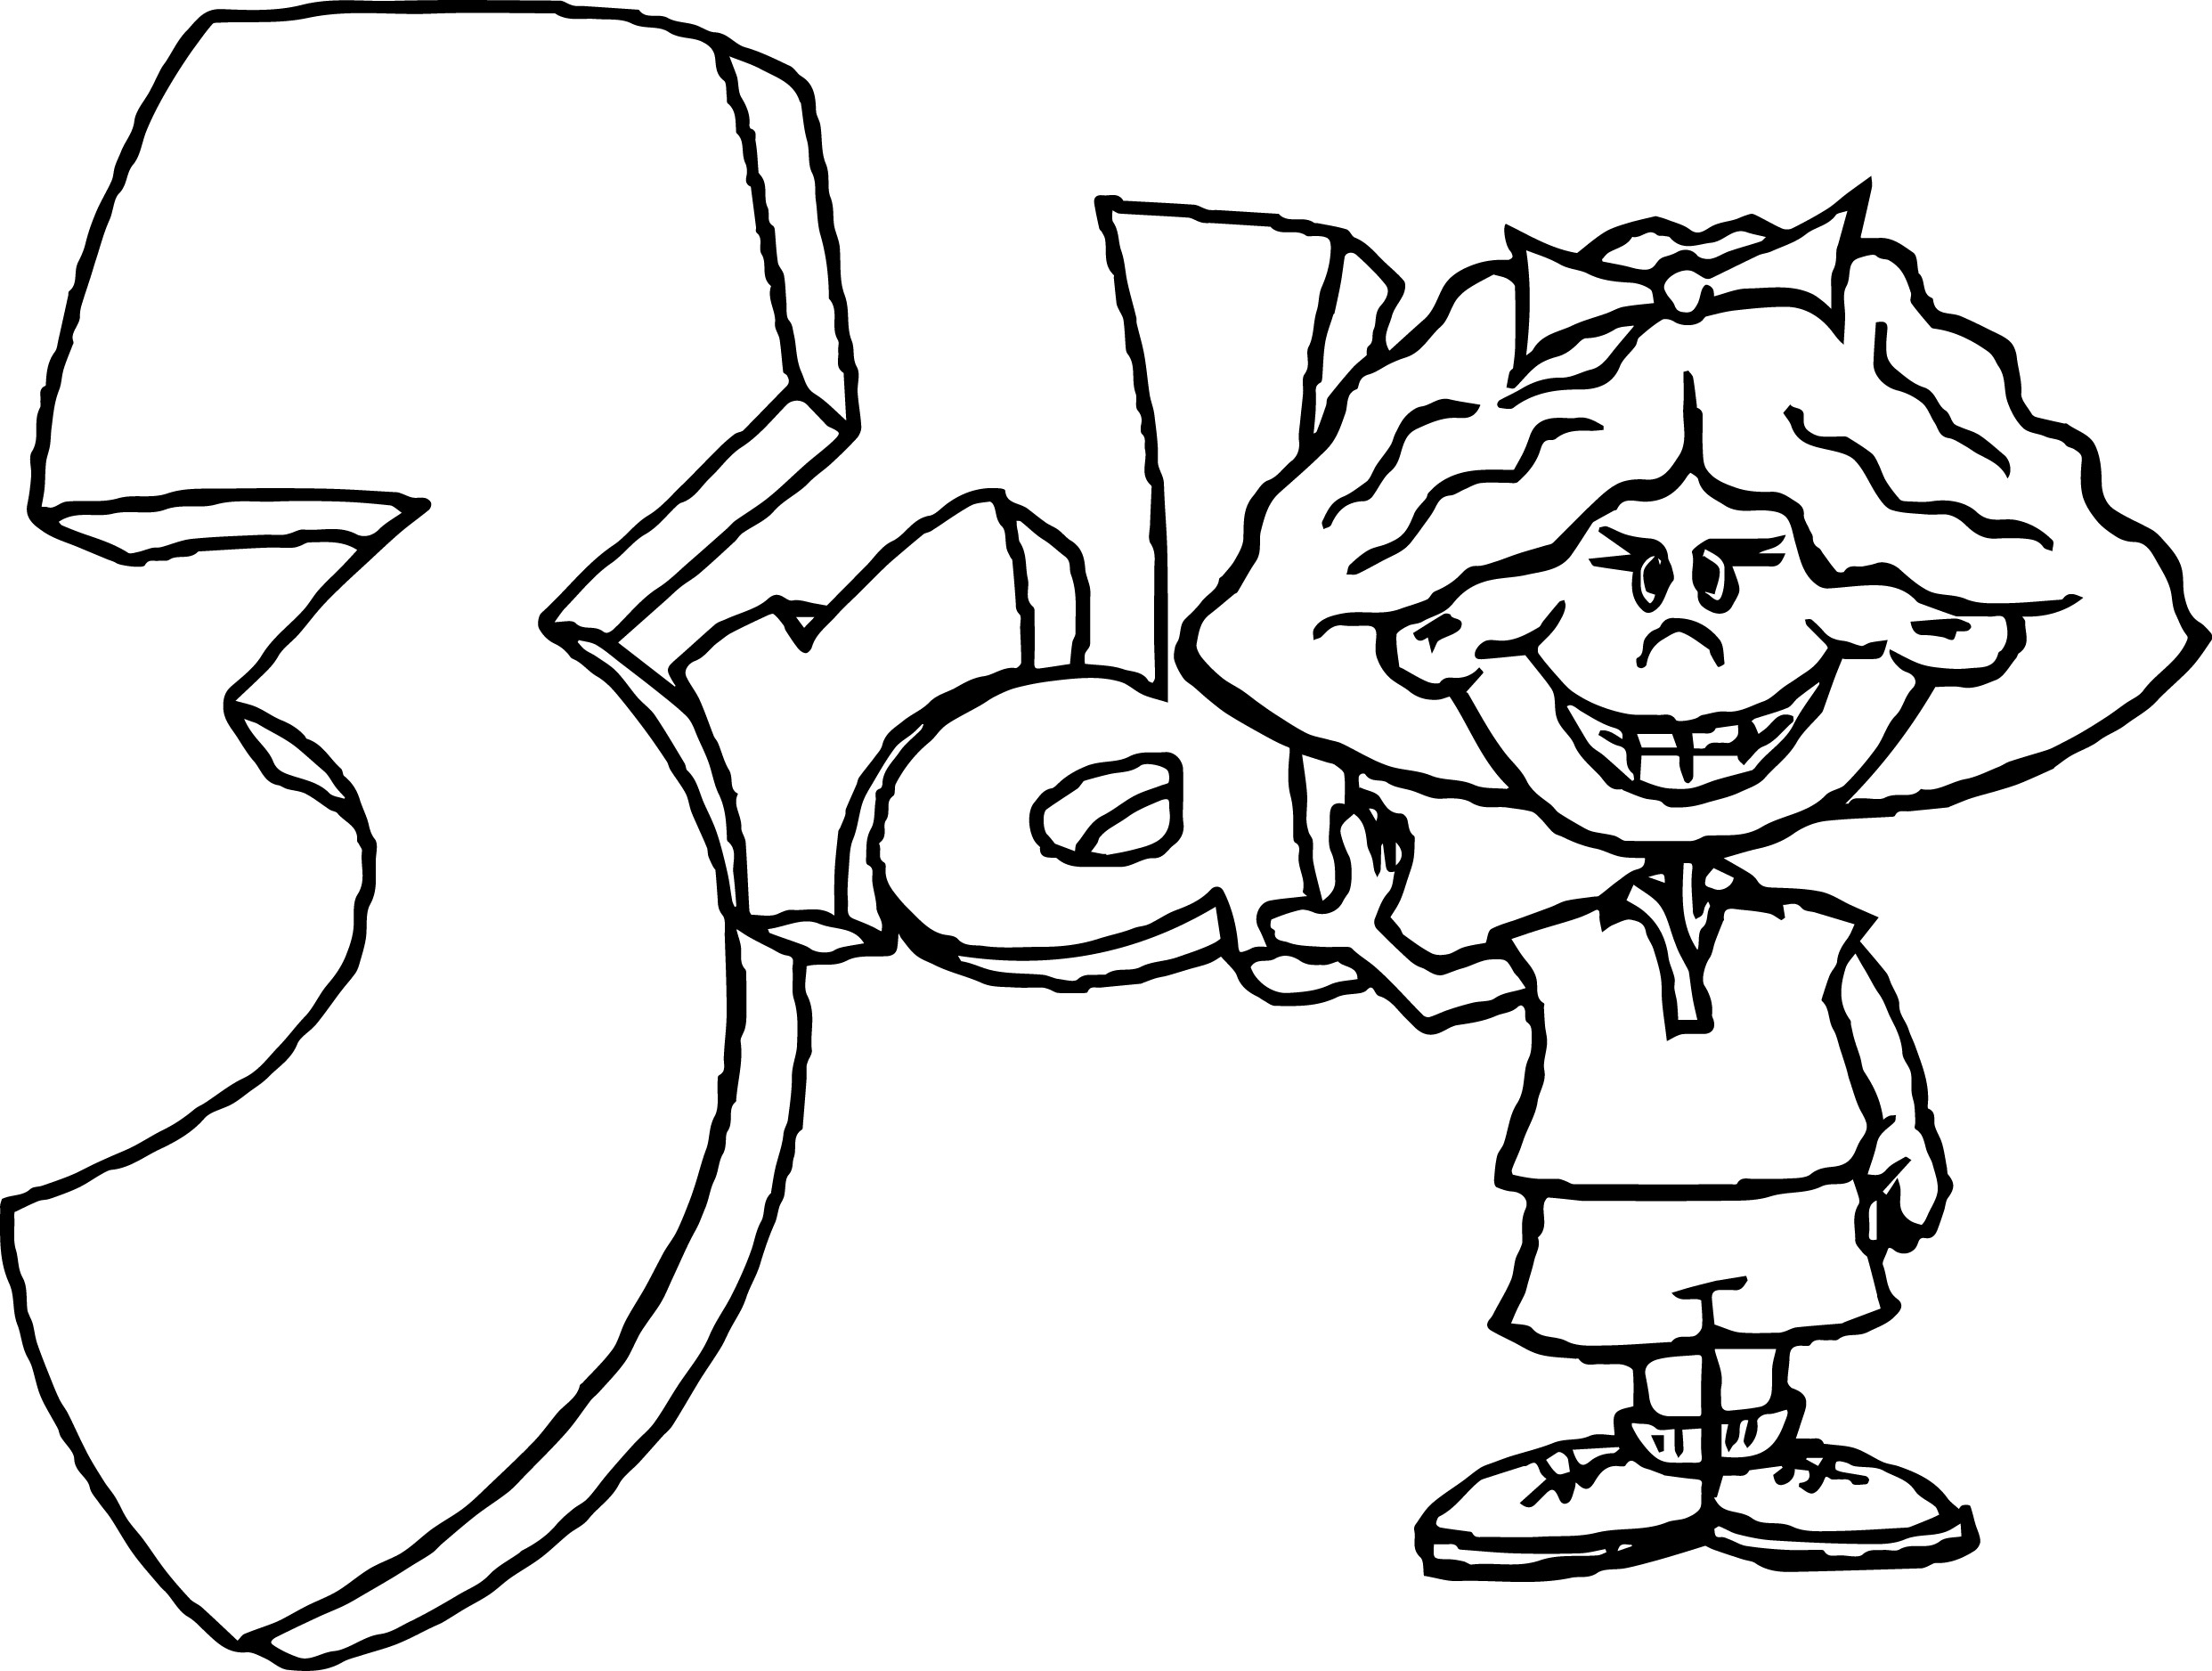 coloring sheets 3rd grade welcome to third grade coloring page twisty noodle grade 3rd sheets coloring